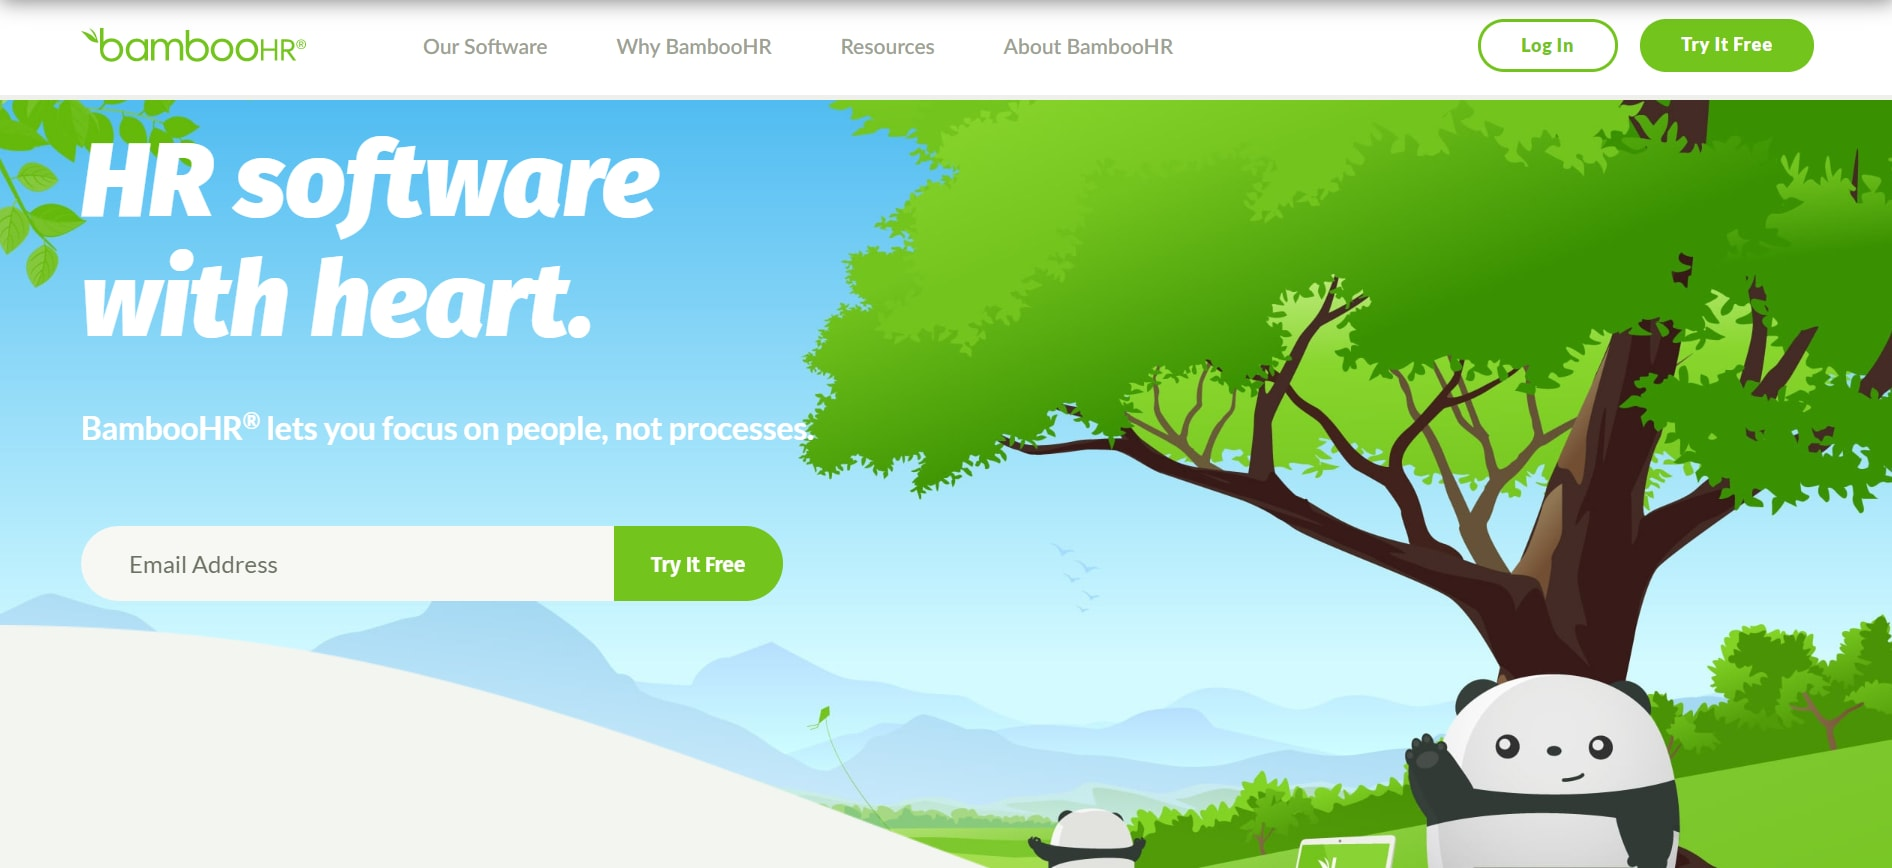 BambooHR homepage